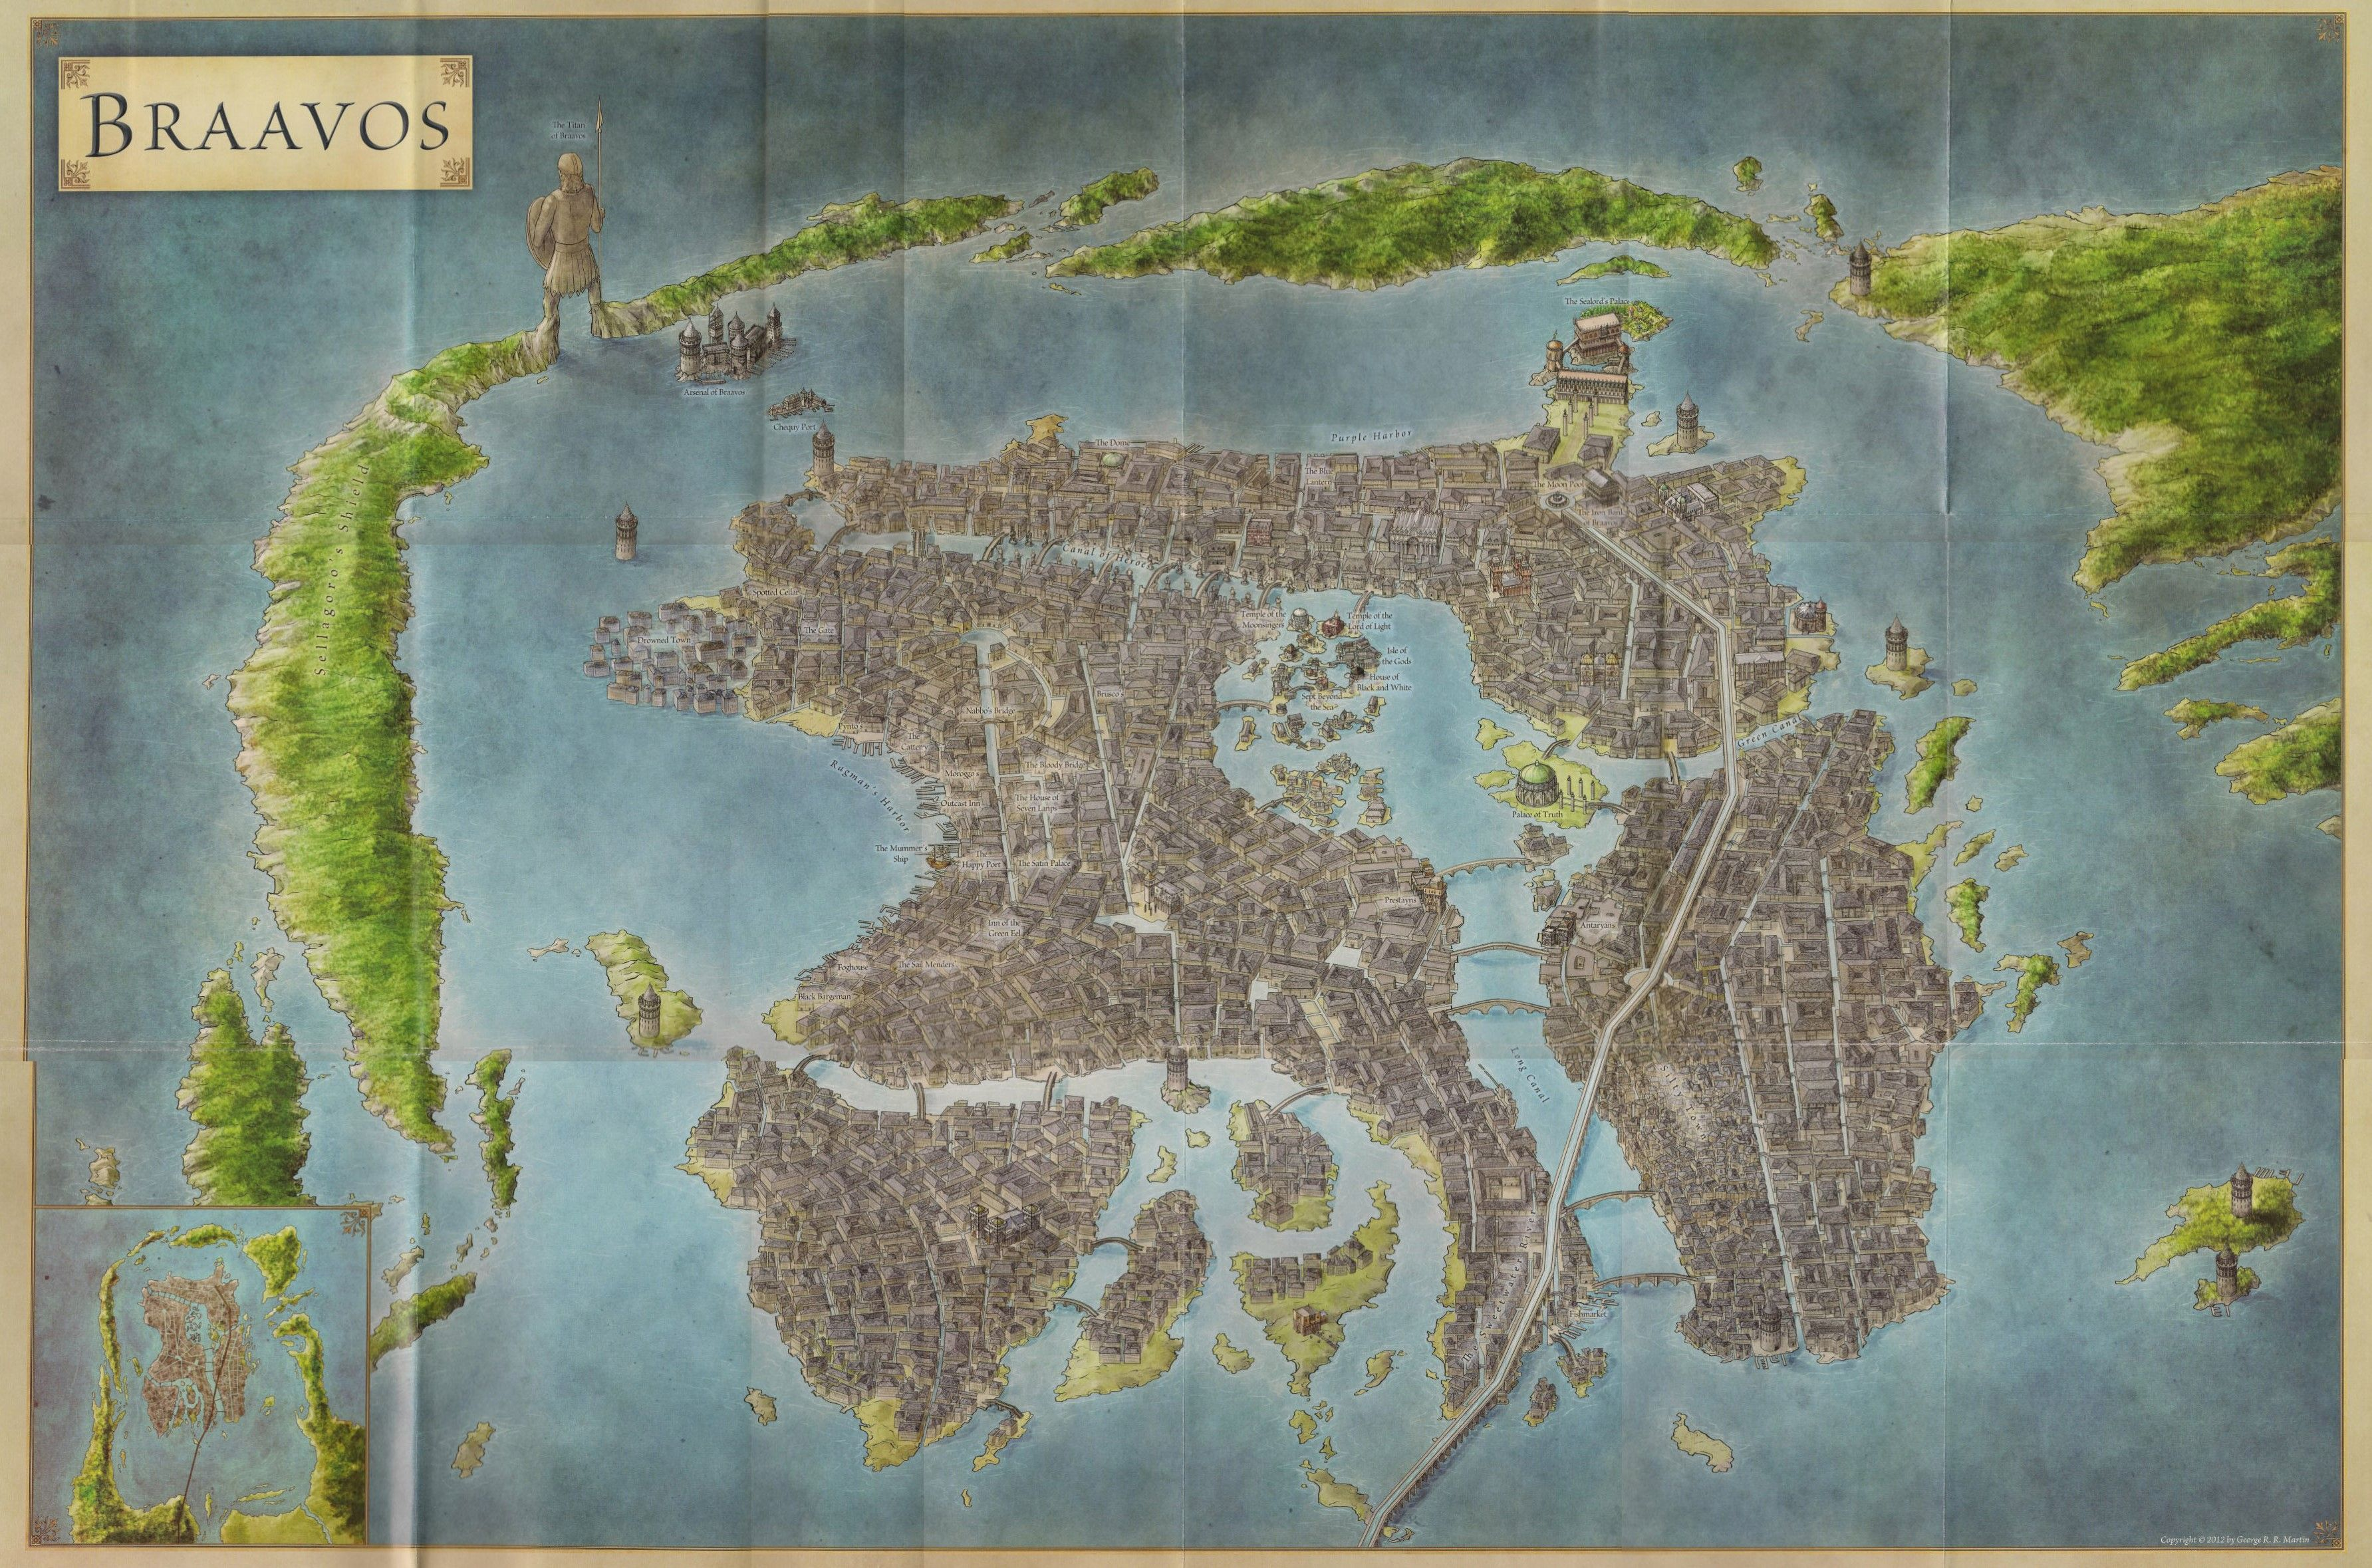 No spoilers a detailed map of braavos resolution 3567x2358 a no spoilers a detailed map of braavos resolution 3567x2358 imgur publicscrutiny Images